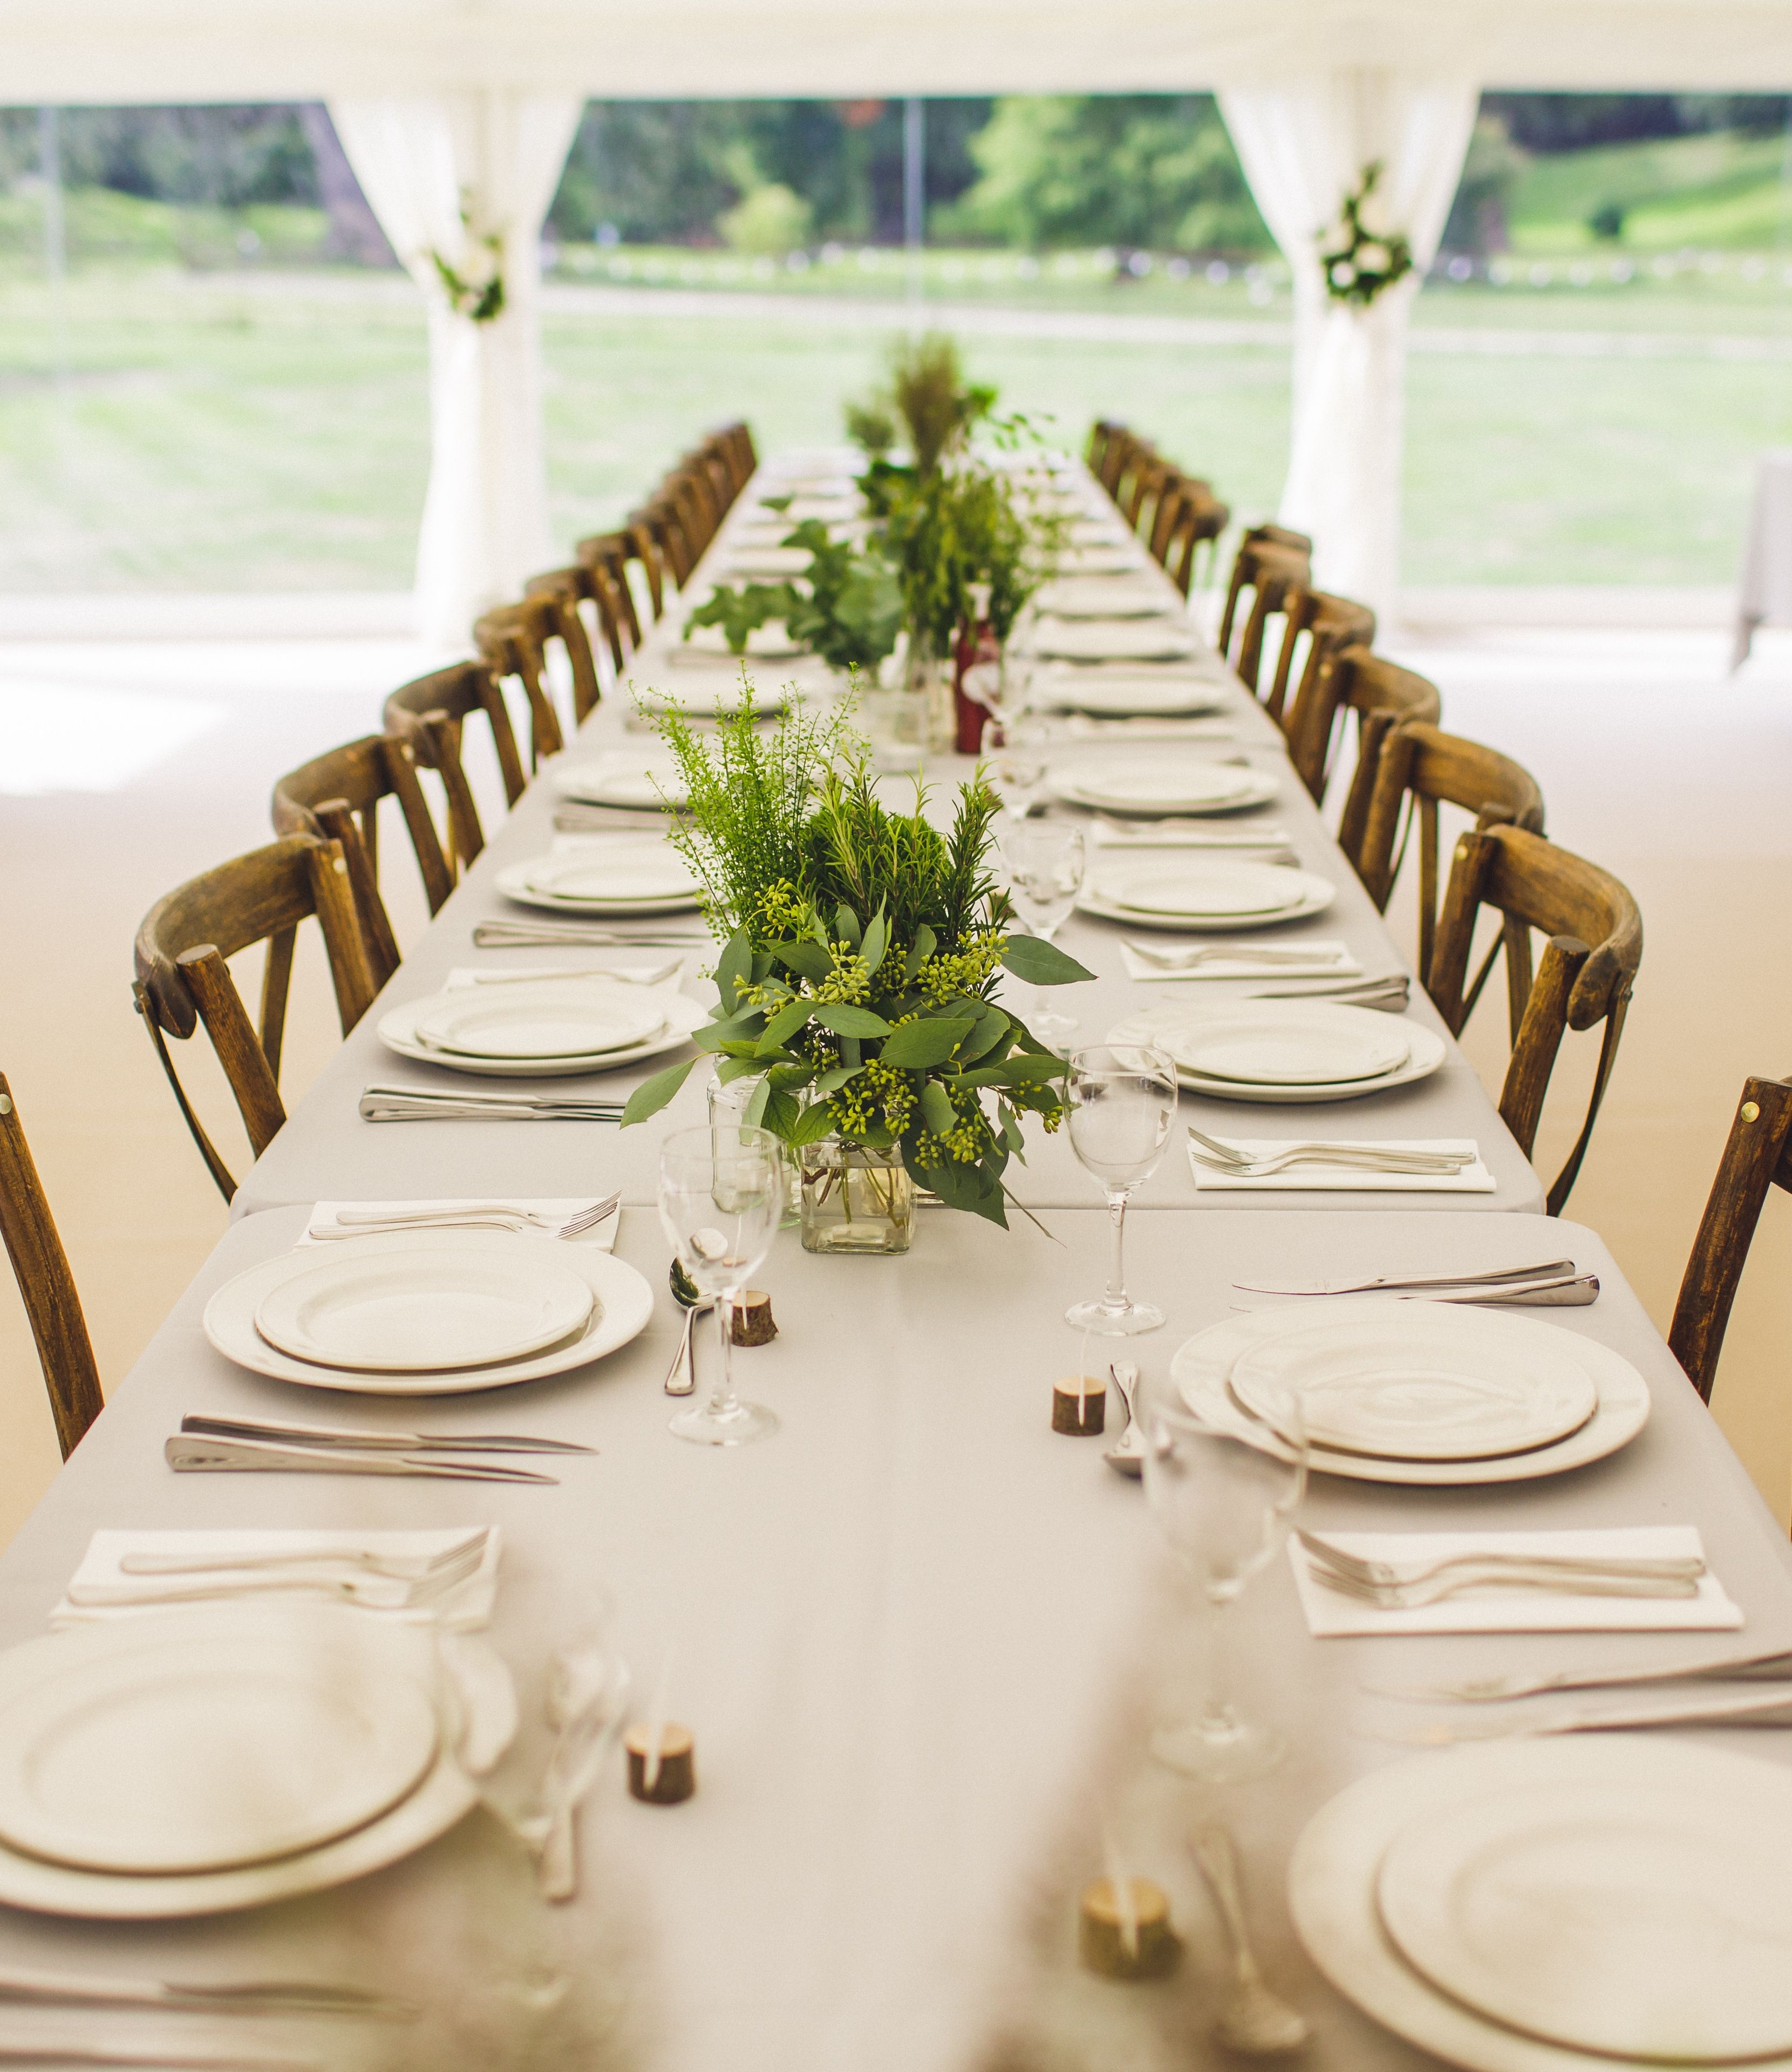 Wedding Table Gorgeousness Grey Table Linen Is A Great Choice As It Just Adds A Little Contrast Wedding Table Linens Wedding Table Seating Plan Wedding Table